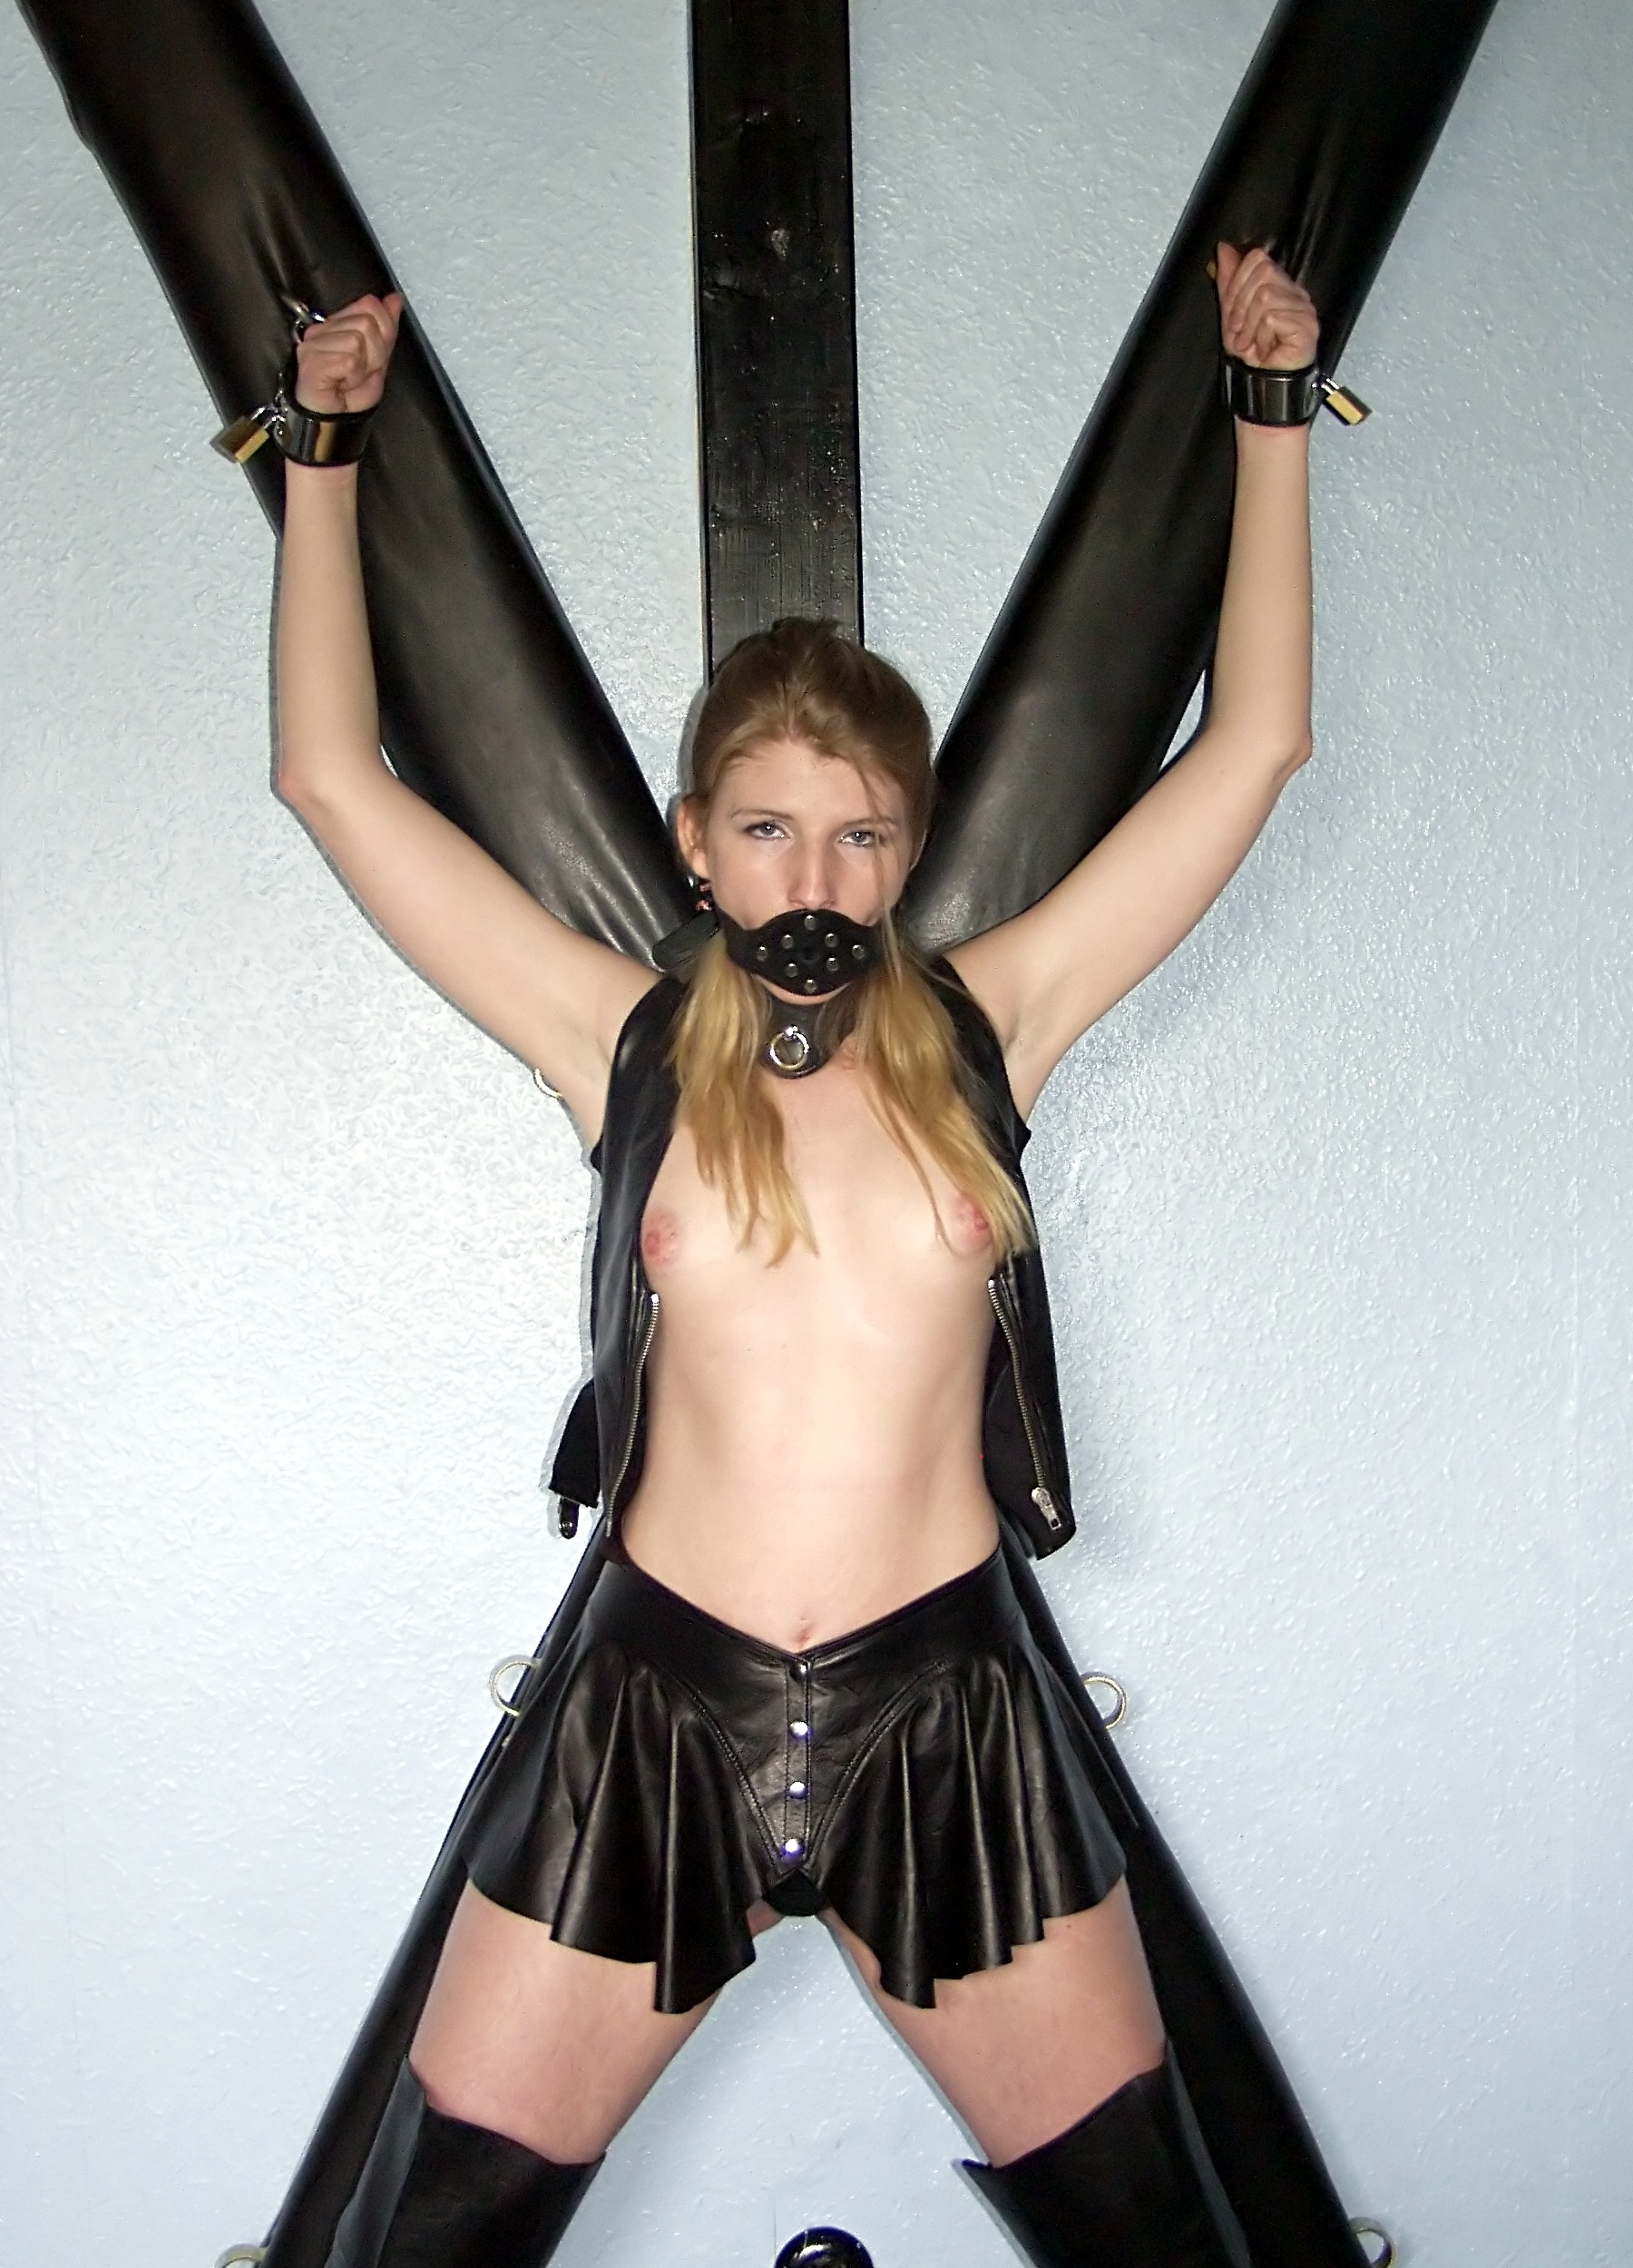 Come Bondage pictures st andrews cross muuuitooo gooooostooooosaaa